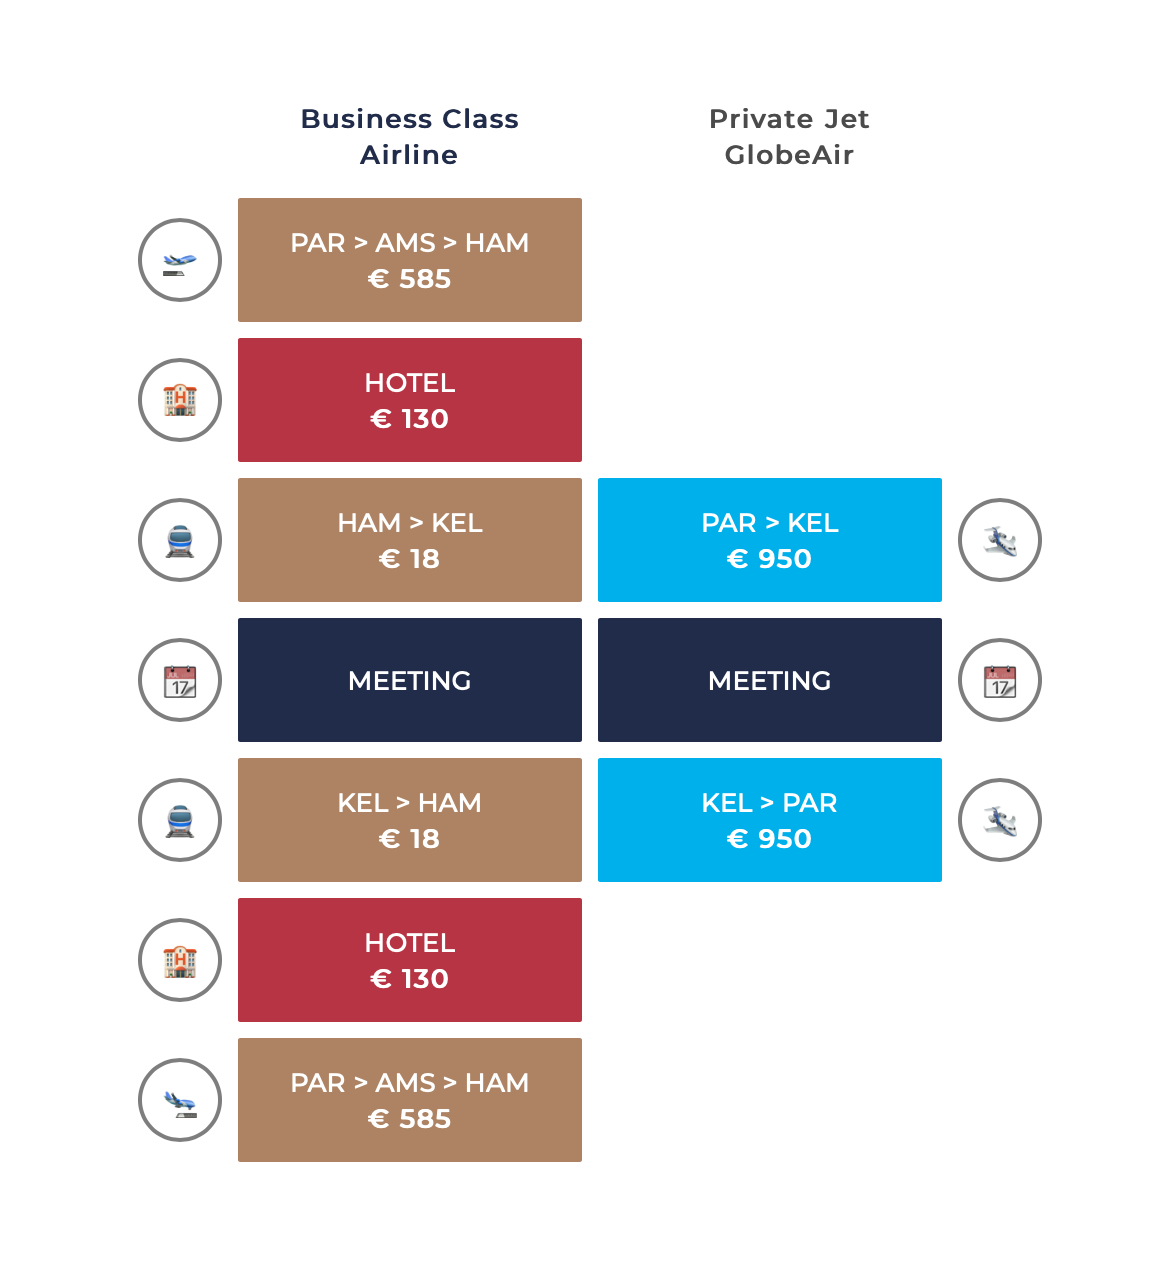 Business class private jet costs compared